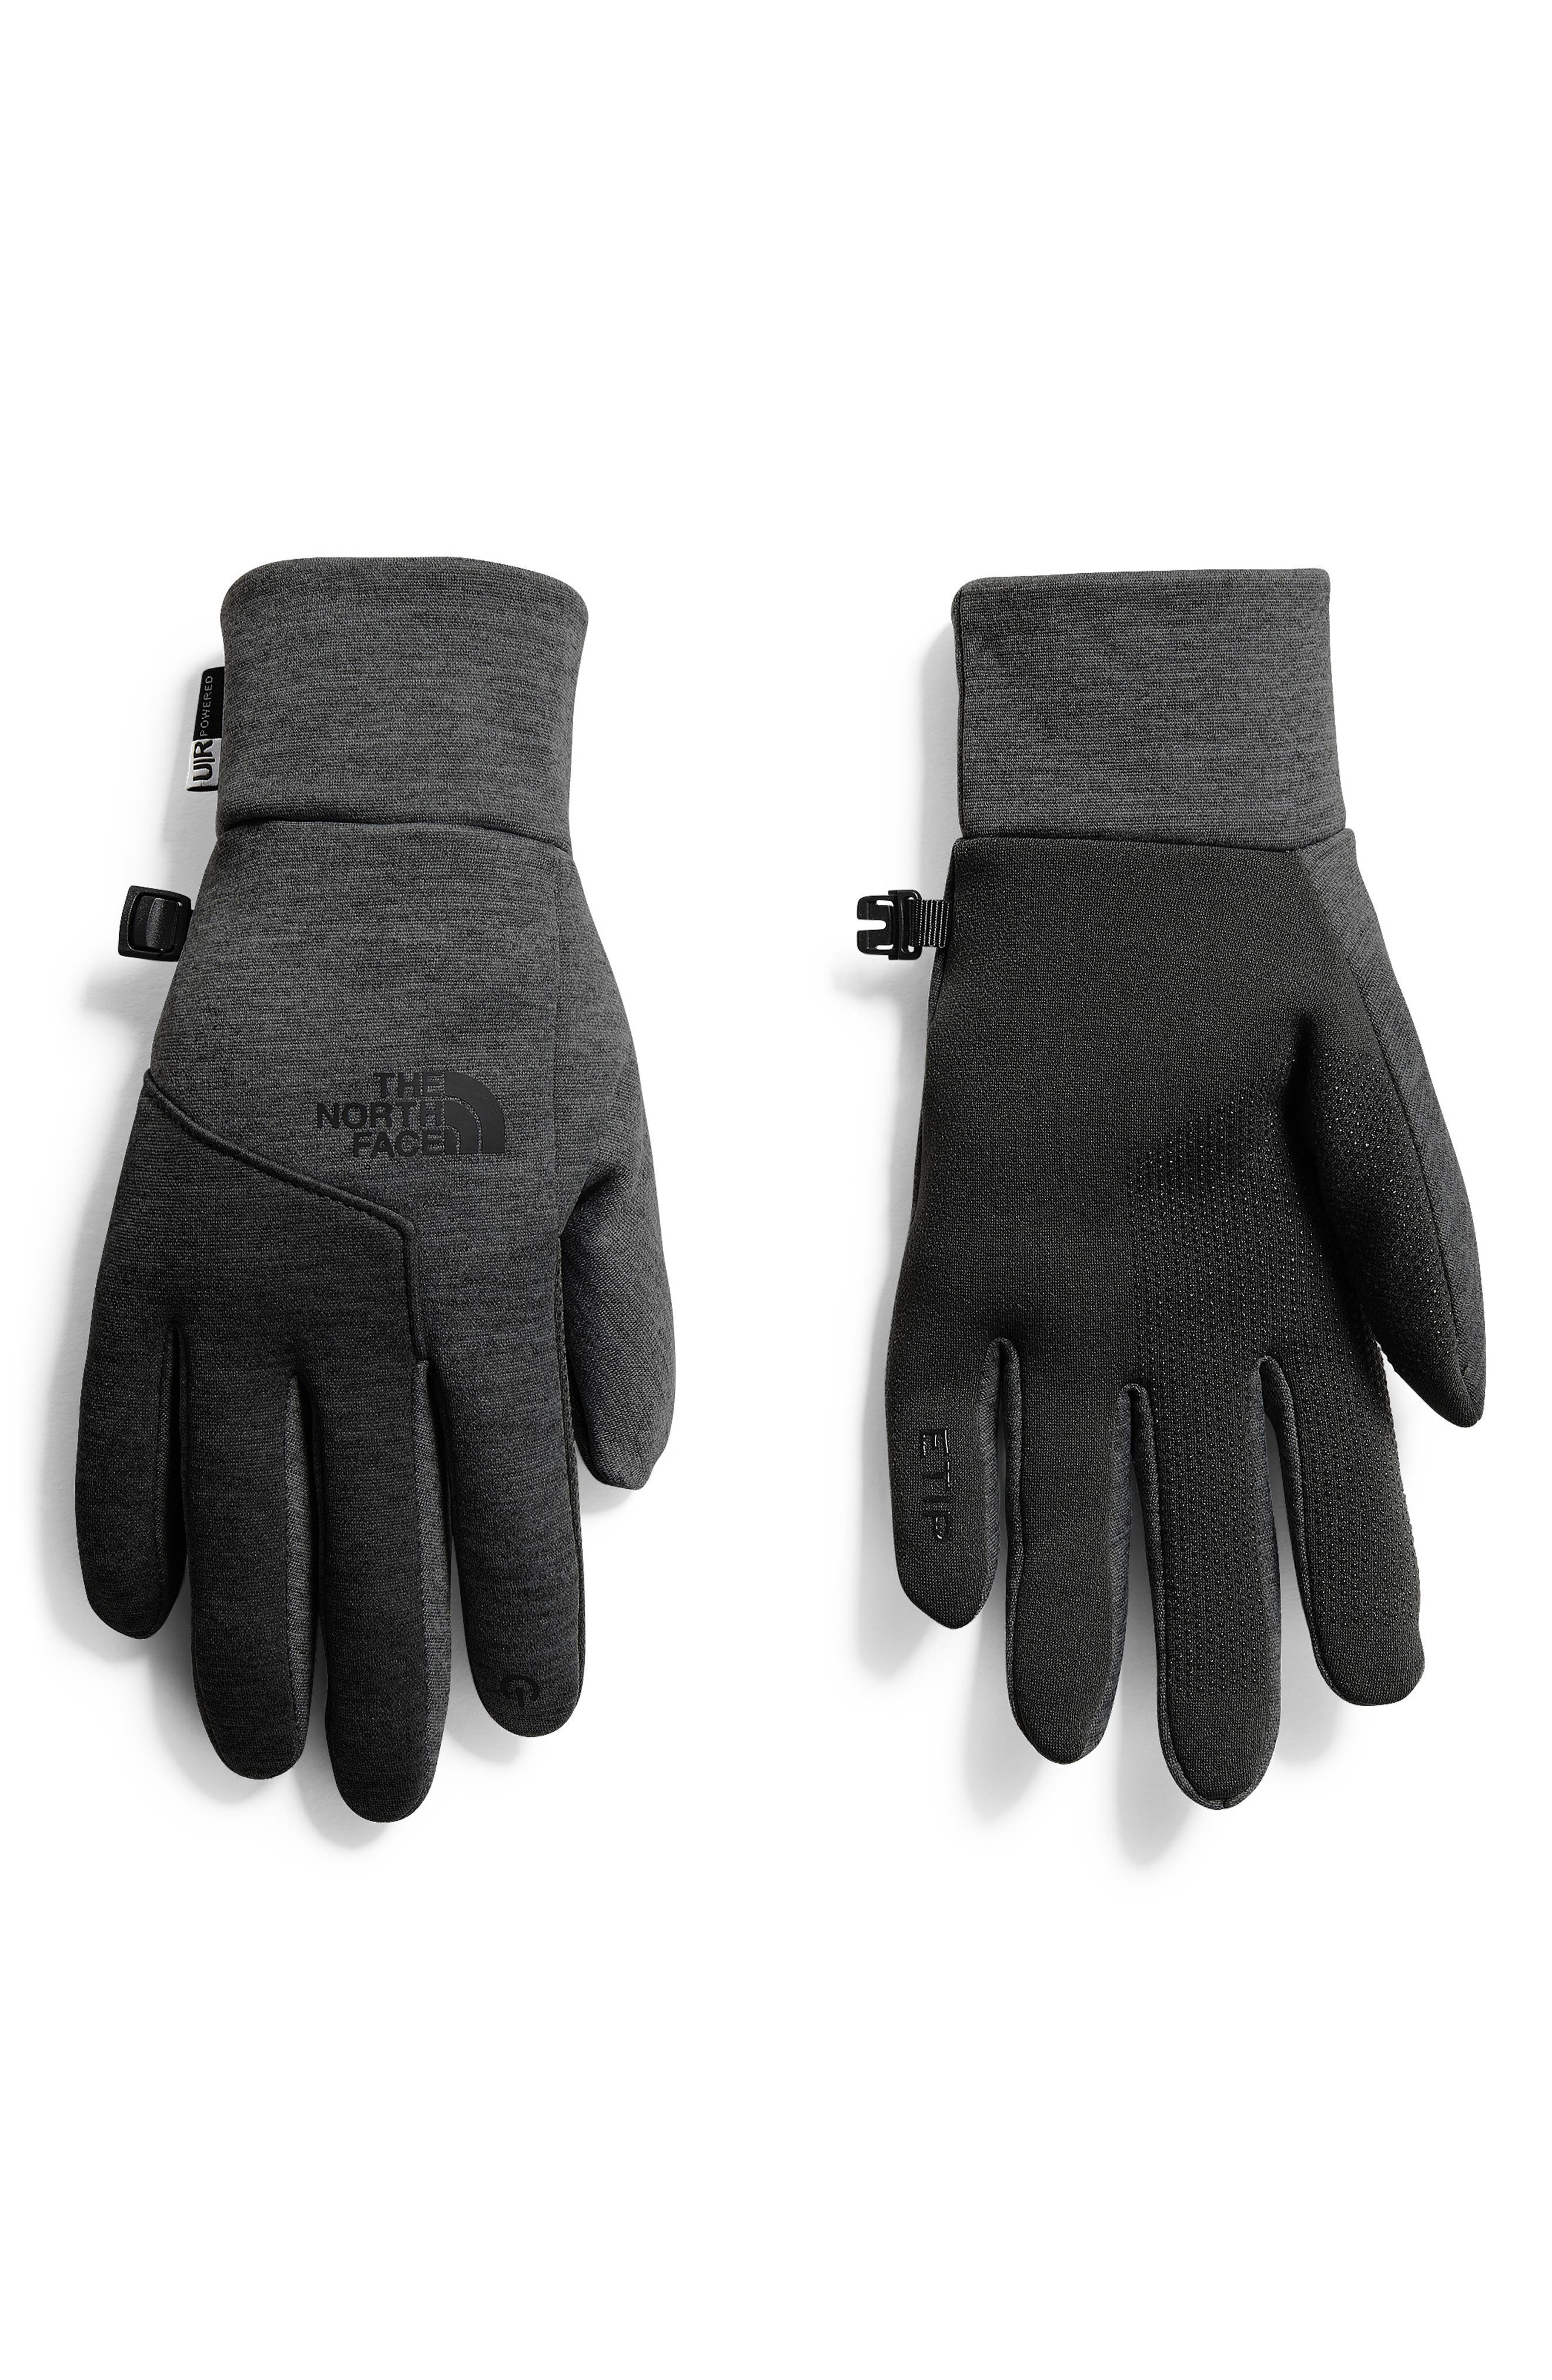 THE NORTH FACE, Etip Gloves, Main thumbnail 1, color, BLACK/ DARK GREY HEATHER